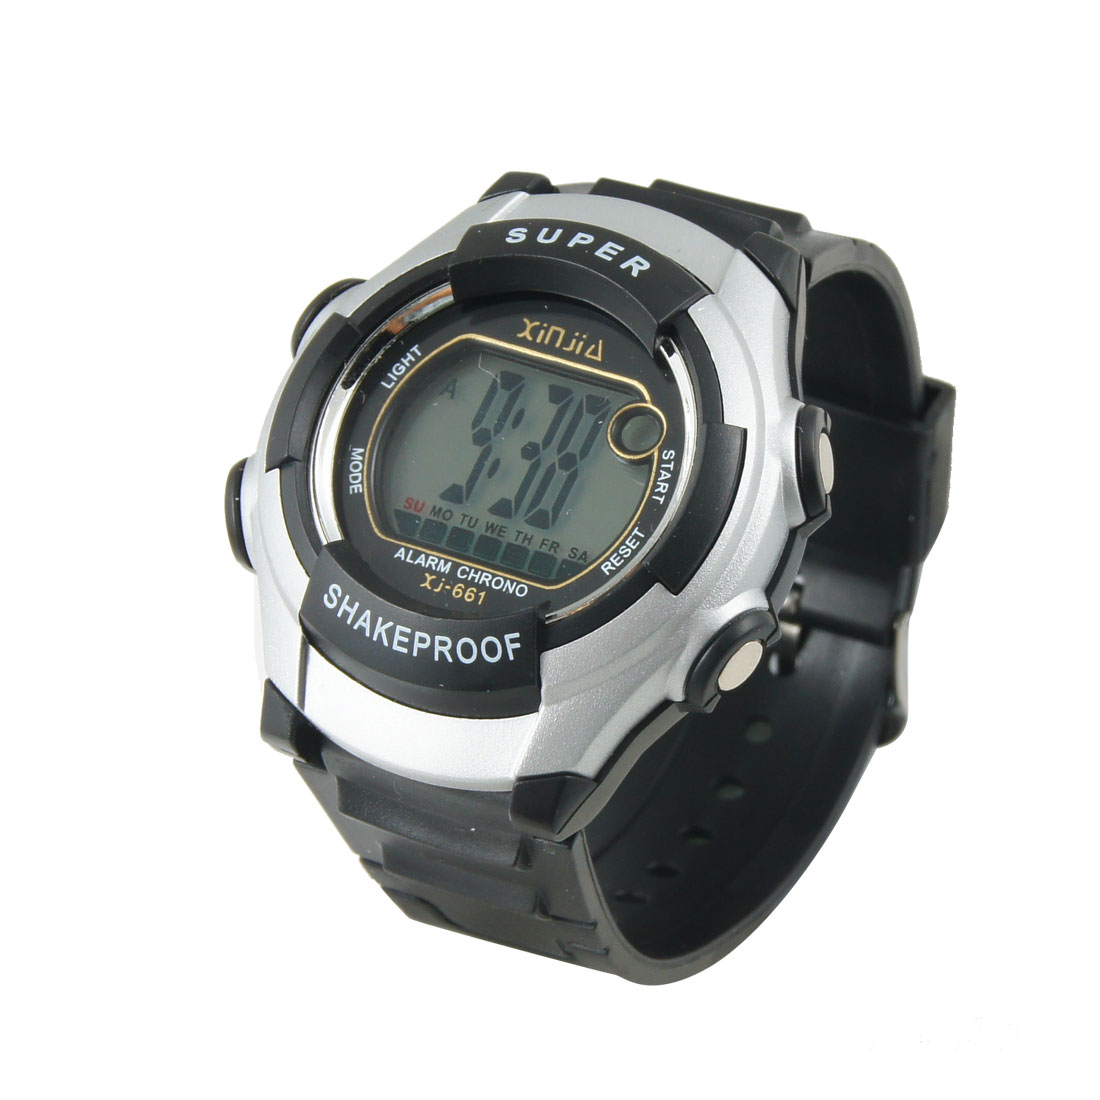 Lady Adjustable Band Water Resistant Sports Digital Watch Black Silver Tone